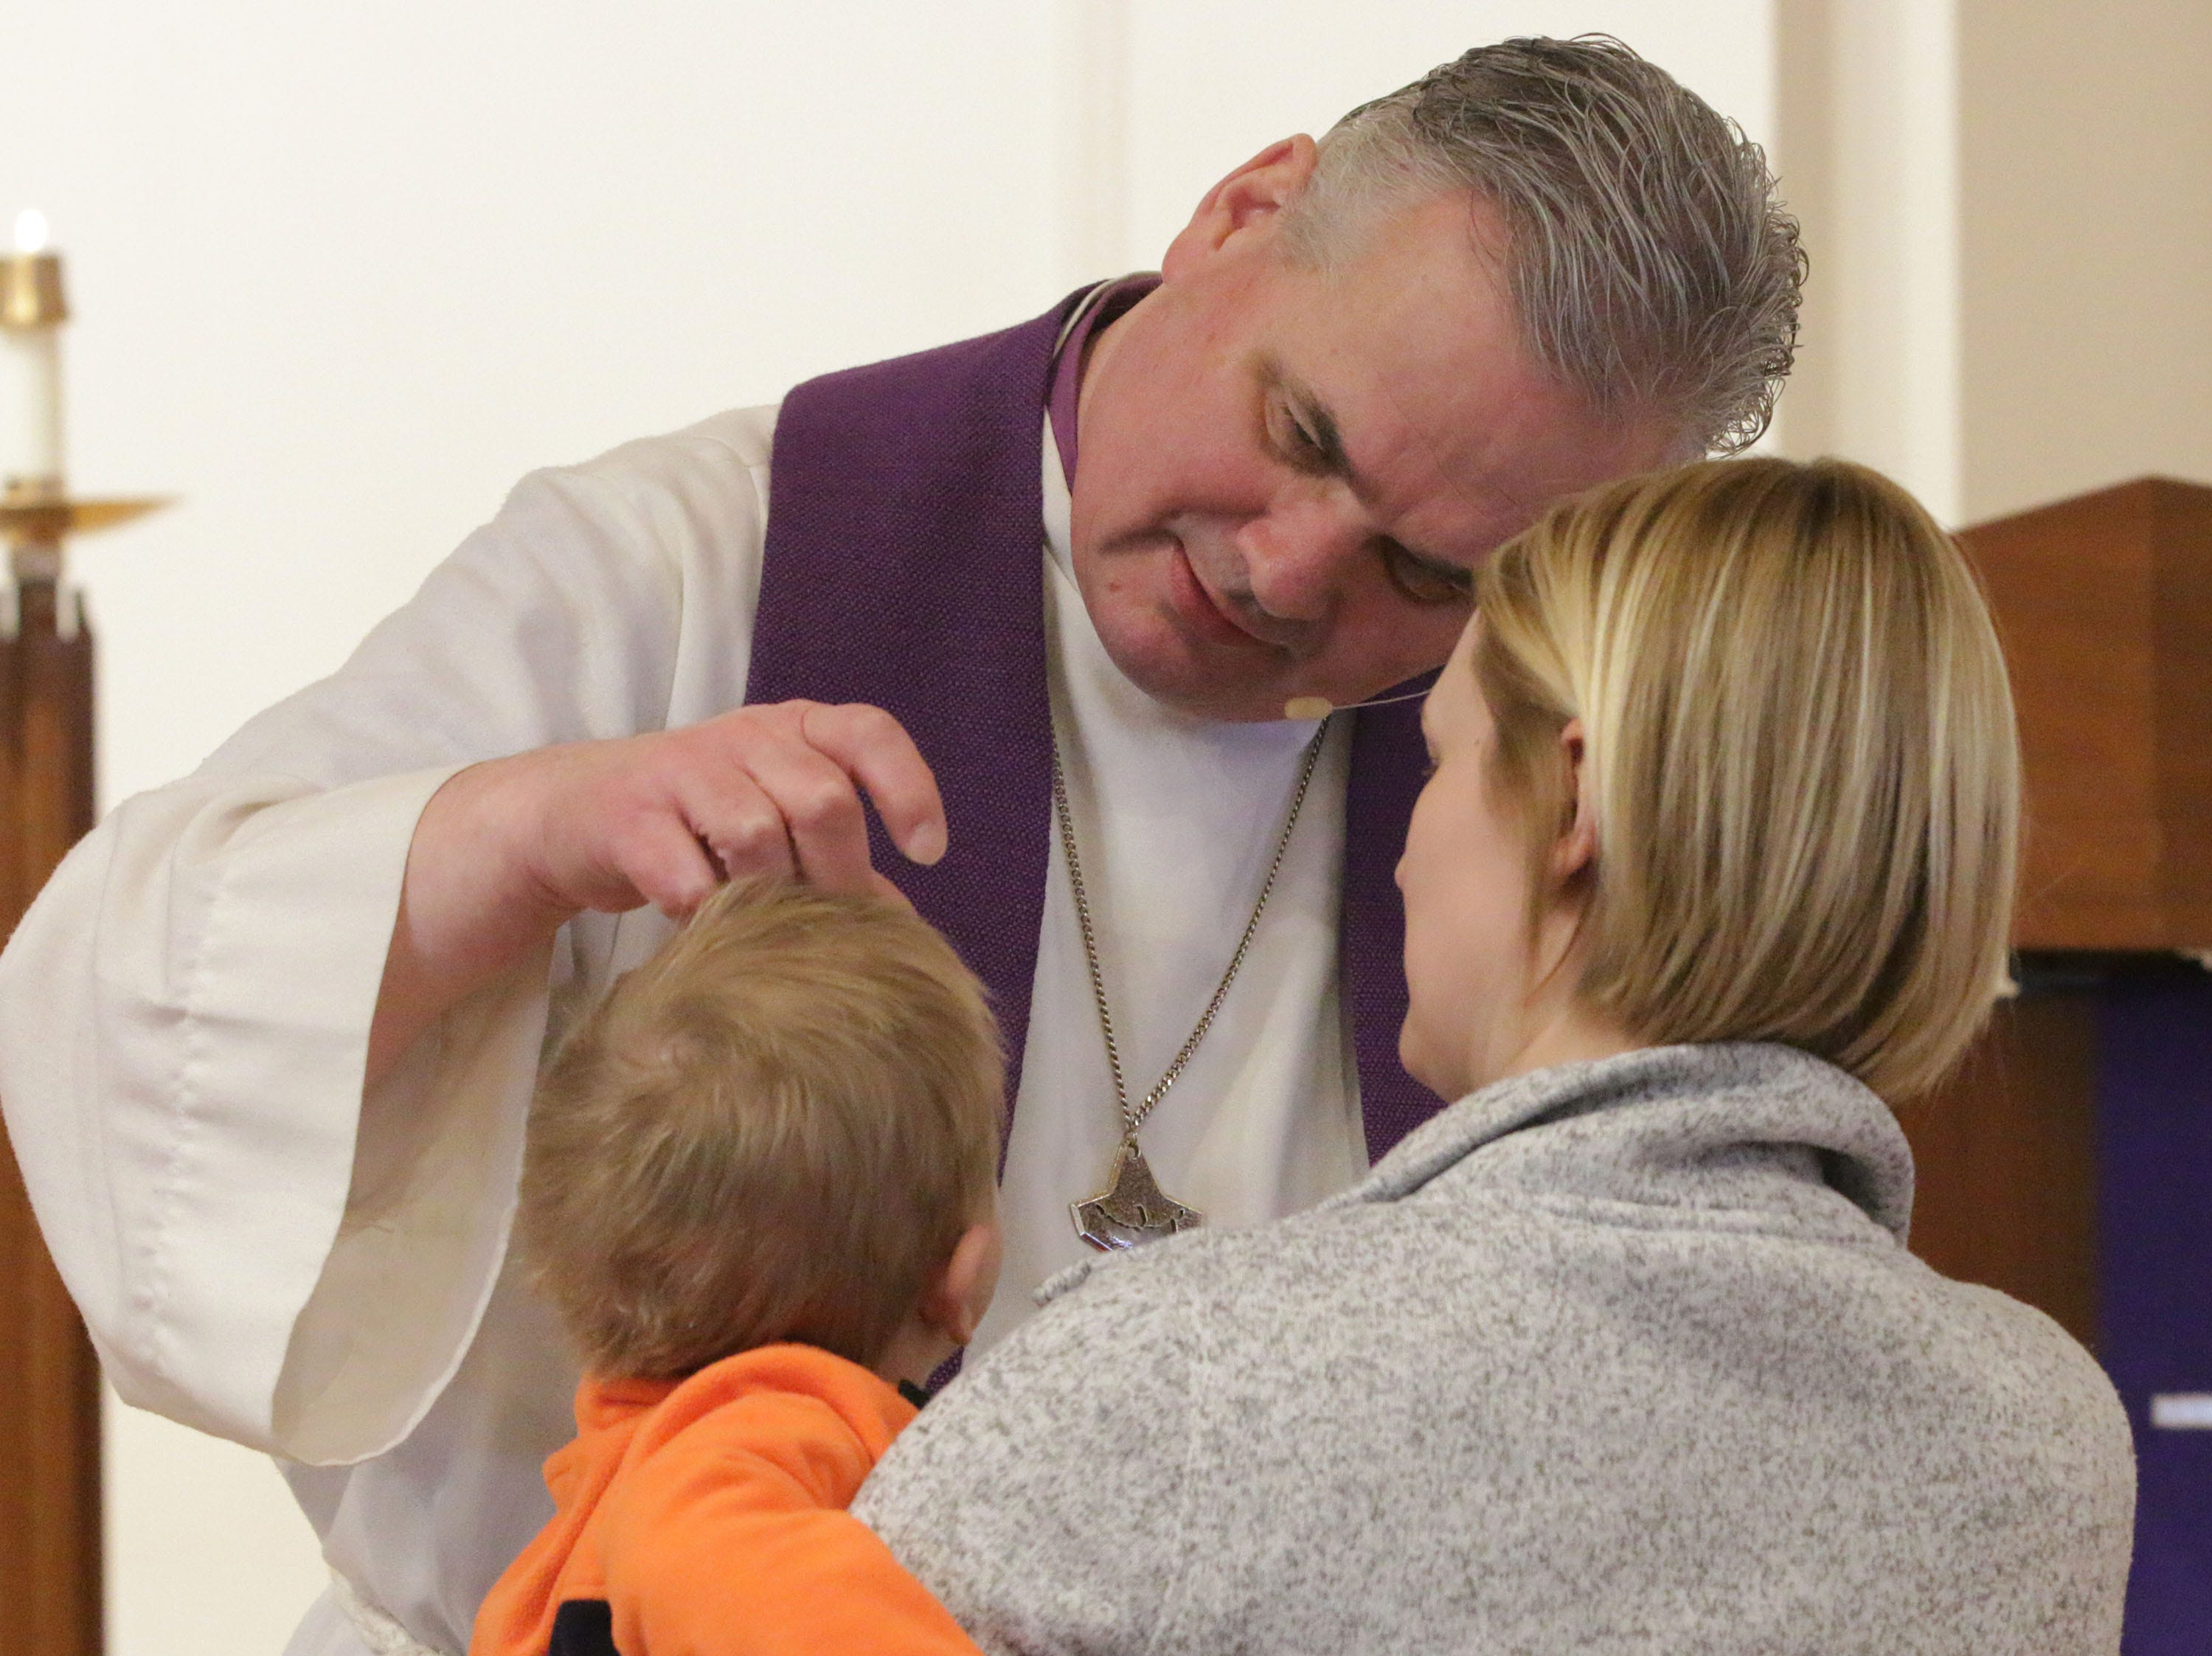 Rev. Todd Smith places ashes on the forehead of Charlie Kolb, 1, while his mom Aimee, both of Sheboygan, holds him during Ash Wednesday service at First United Lutheran Church, Wednesday, March 6, 2019, in Sheboygan, Wis.